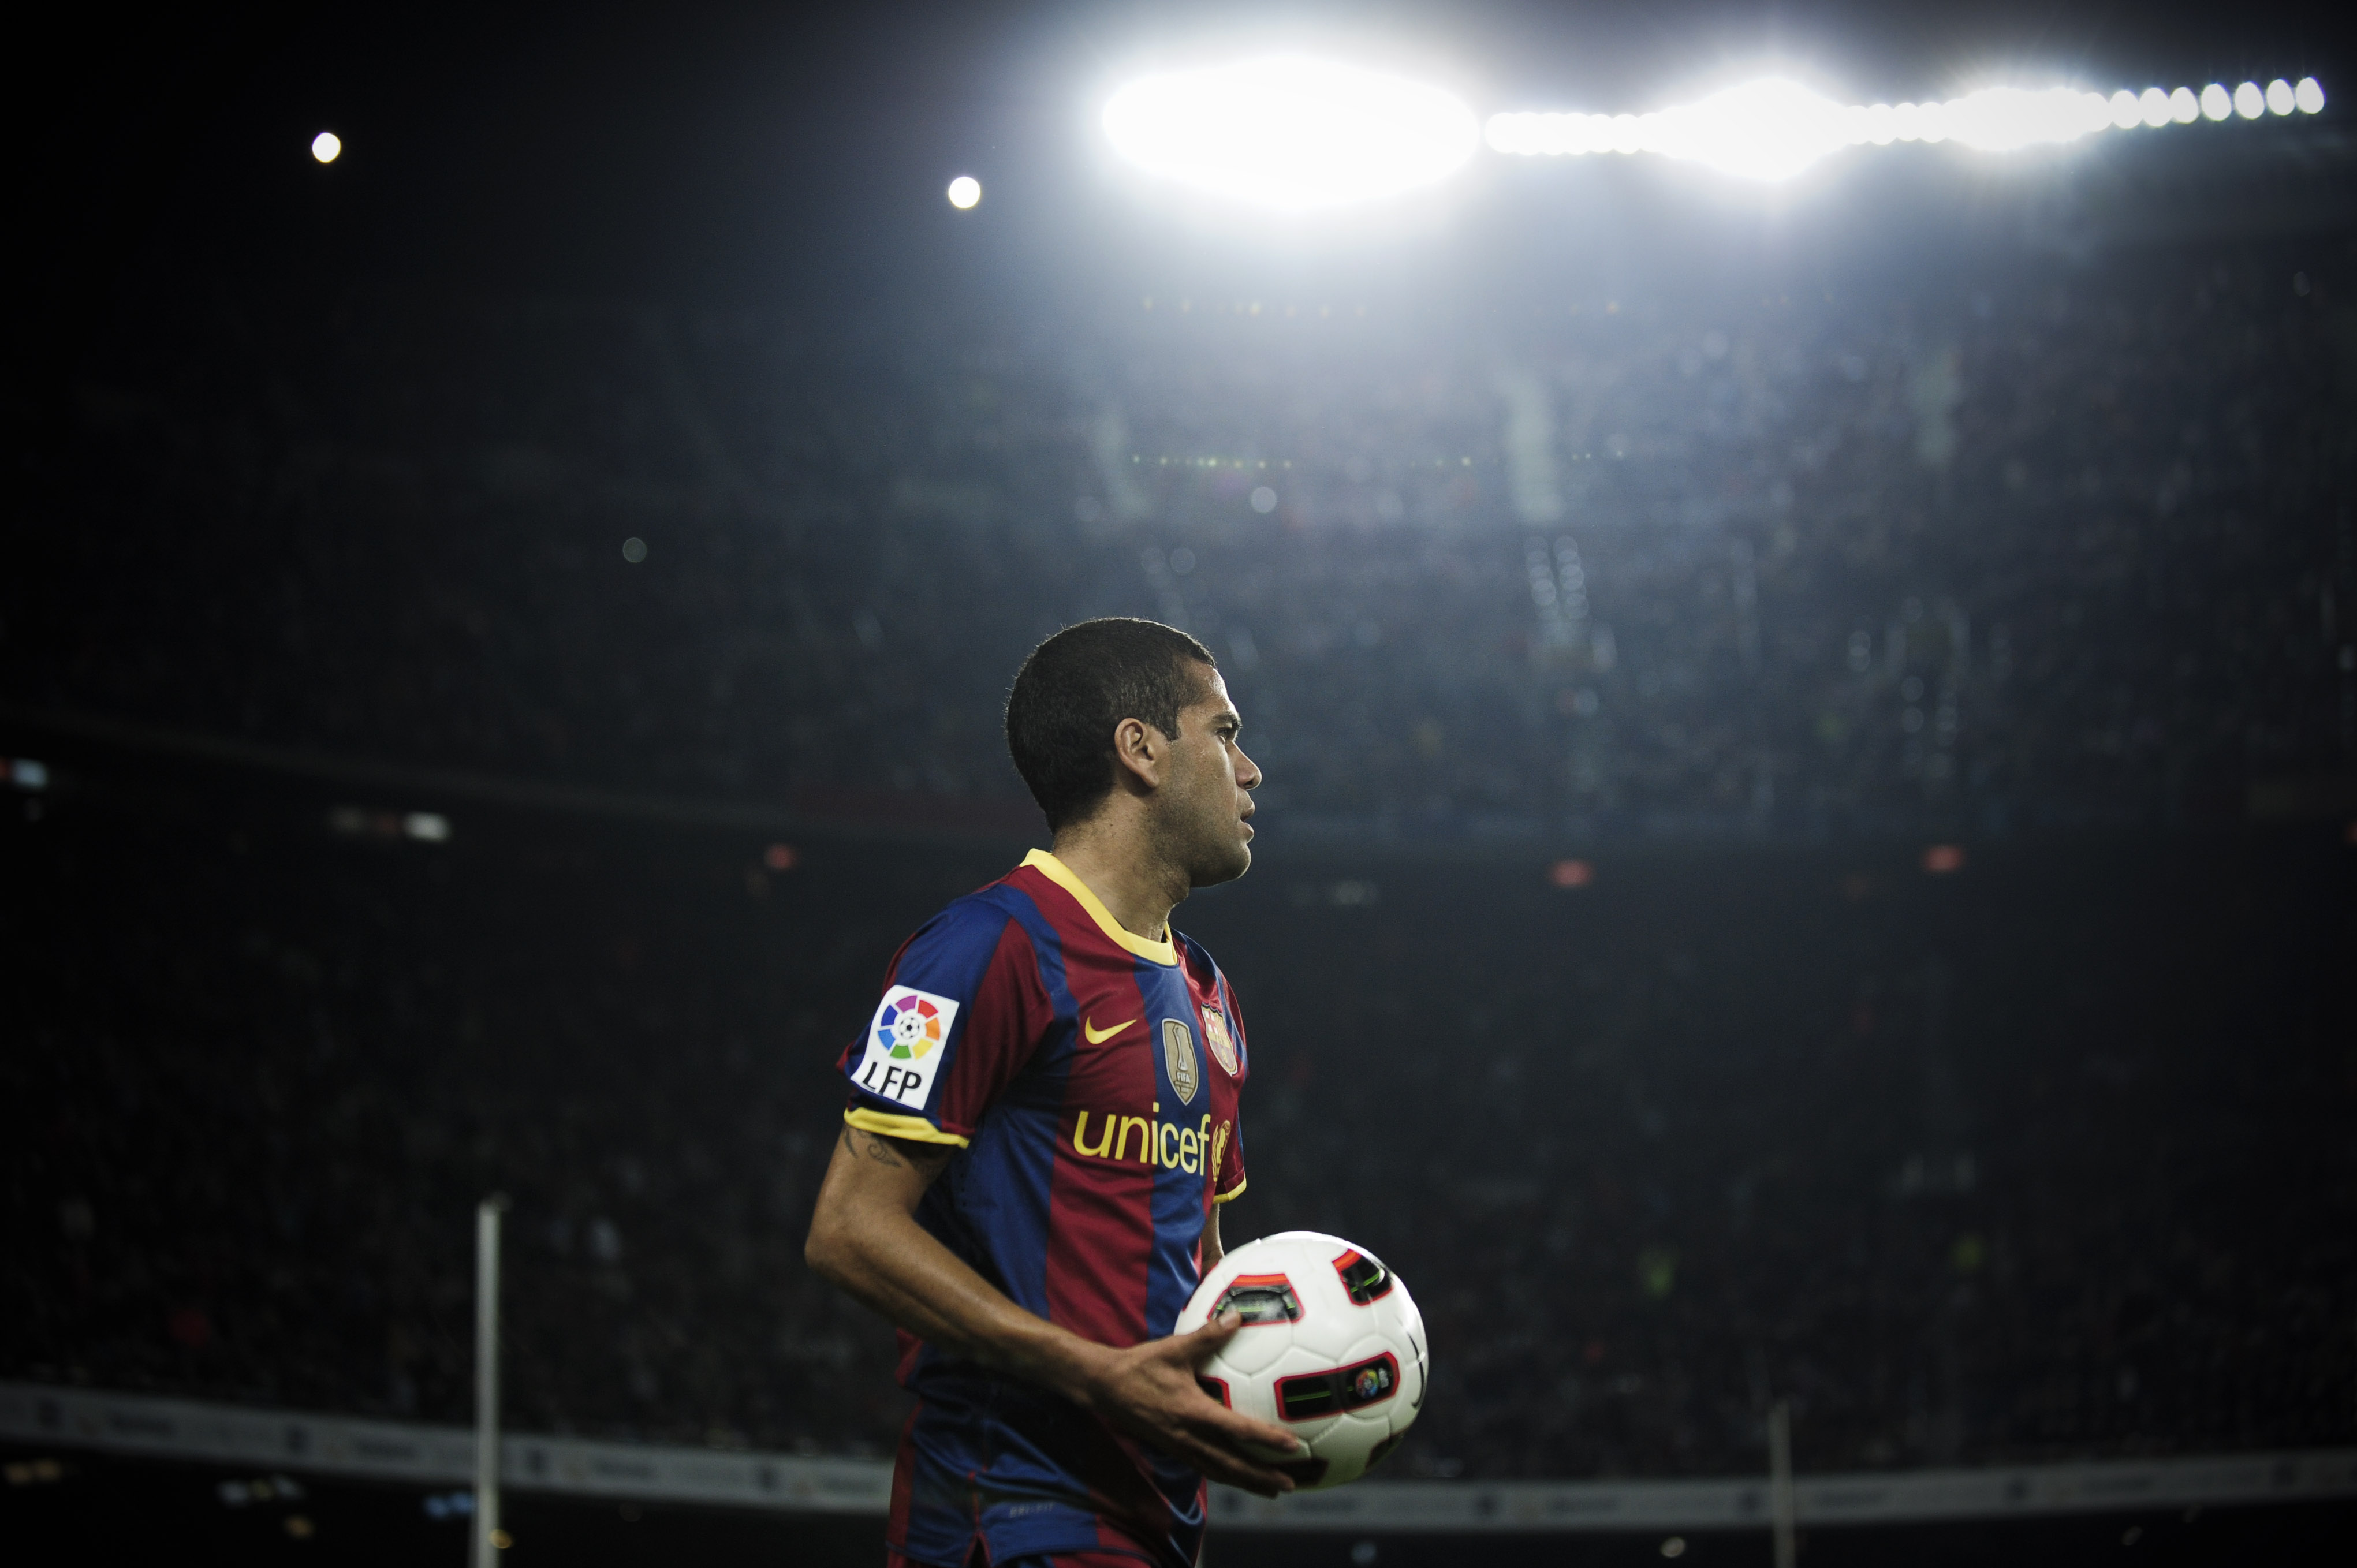 BARCELONA, SPAIN - OCTOBER 16:  Daniel Alves of Barcelona holds the ball during the La Liga match between Barcelona and Valencia at the Camp Nou stadium on October 16, 2010 in Barcelona, Spain. Barcelona won the match 2-1.  (Photo by David Ramos/Getty Ima